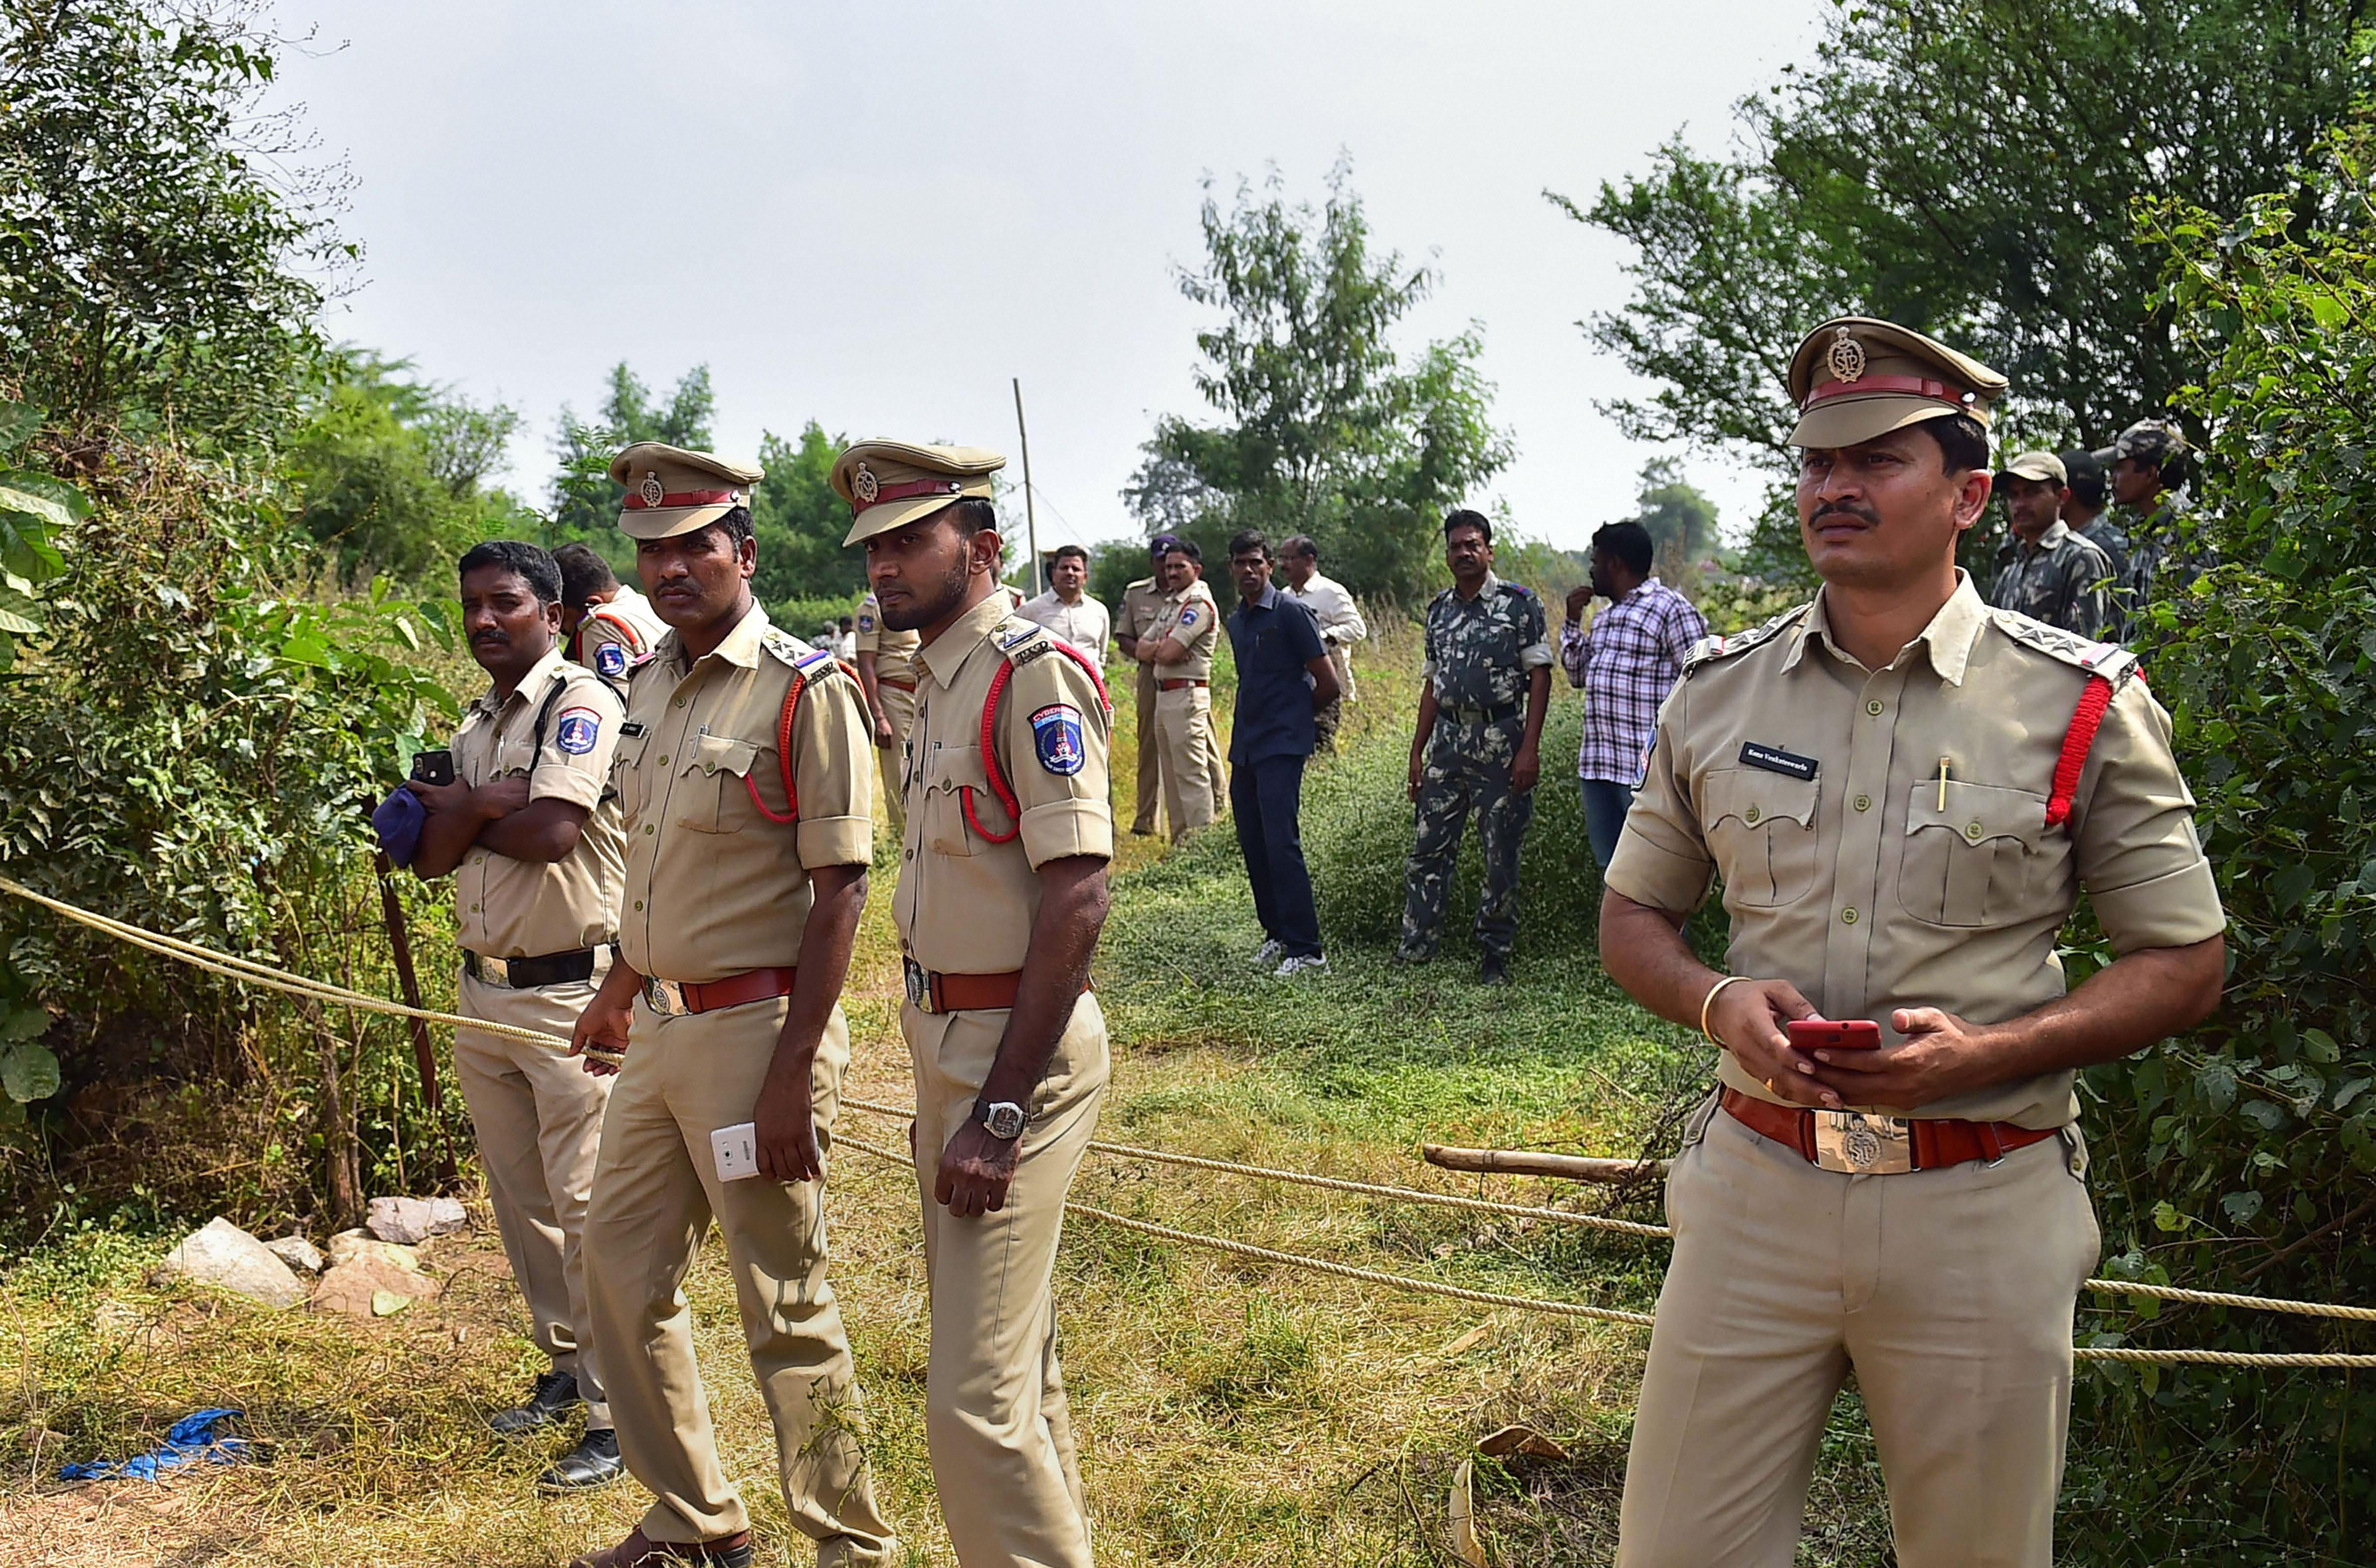 Policemen stand guard the area where four accused in the rape and murder case of a woman veterinarian were shot dead by police, at Shadnagar of Ranga Reddy district in Hyderabad, Friday, Dec. 6, 2019